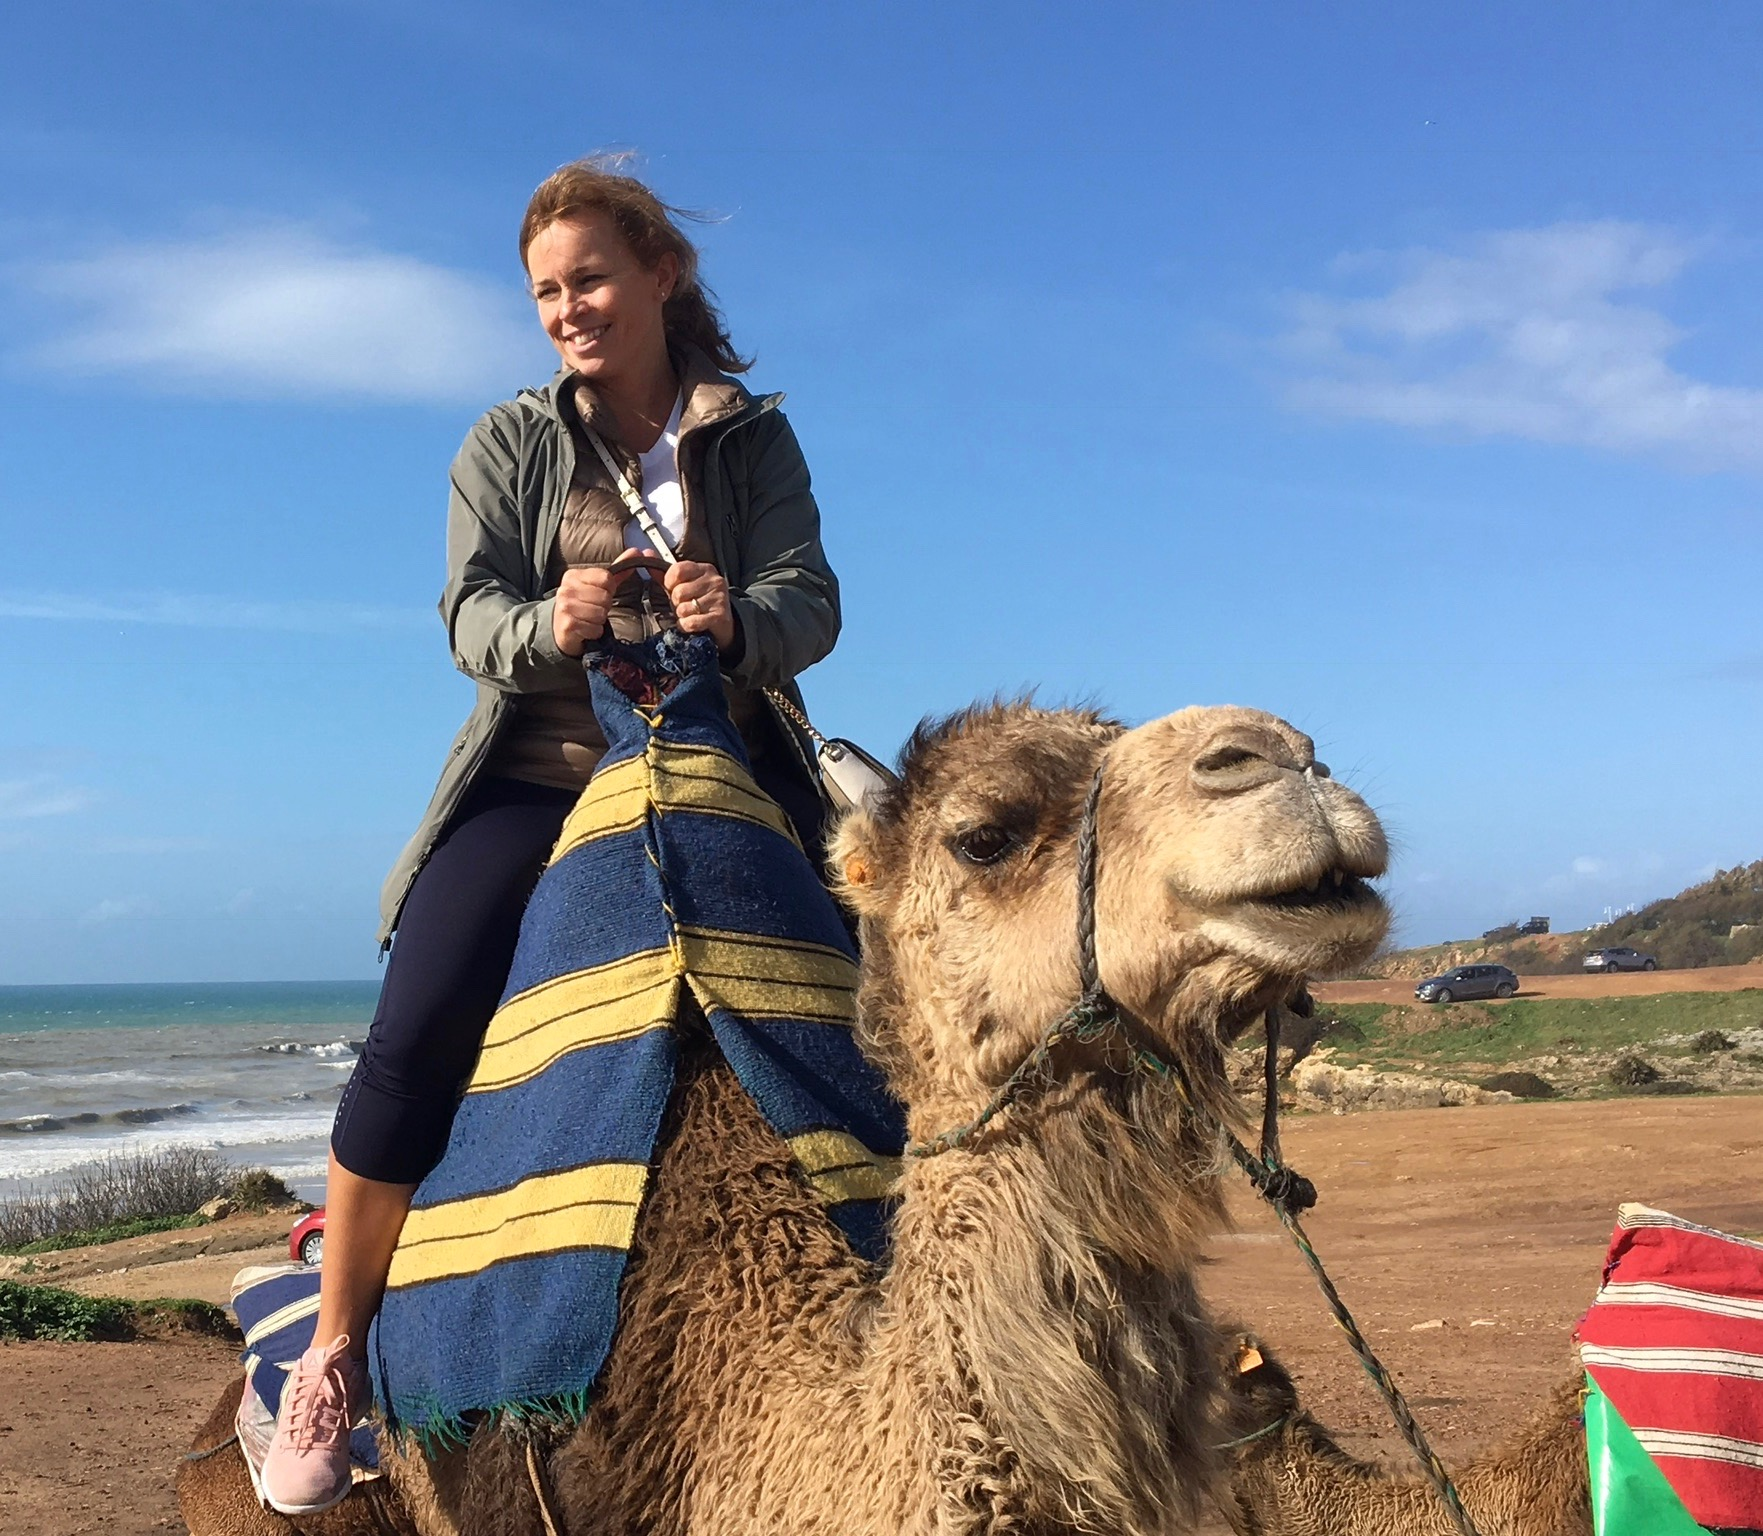 About Denise… - I am so excited to host you on this journey to Morocco! It is a country that took my breath away, I found it simply incredible and beautiful. I am thrilled to bring together a group of like-minded female travellers to create this trip of a lifetime and create lasting memories and friendships.